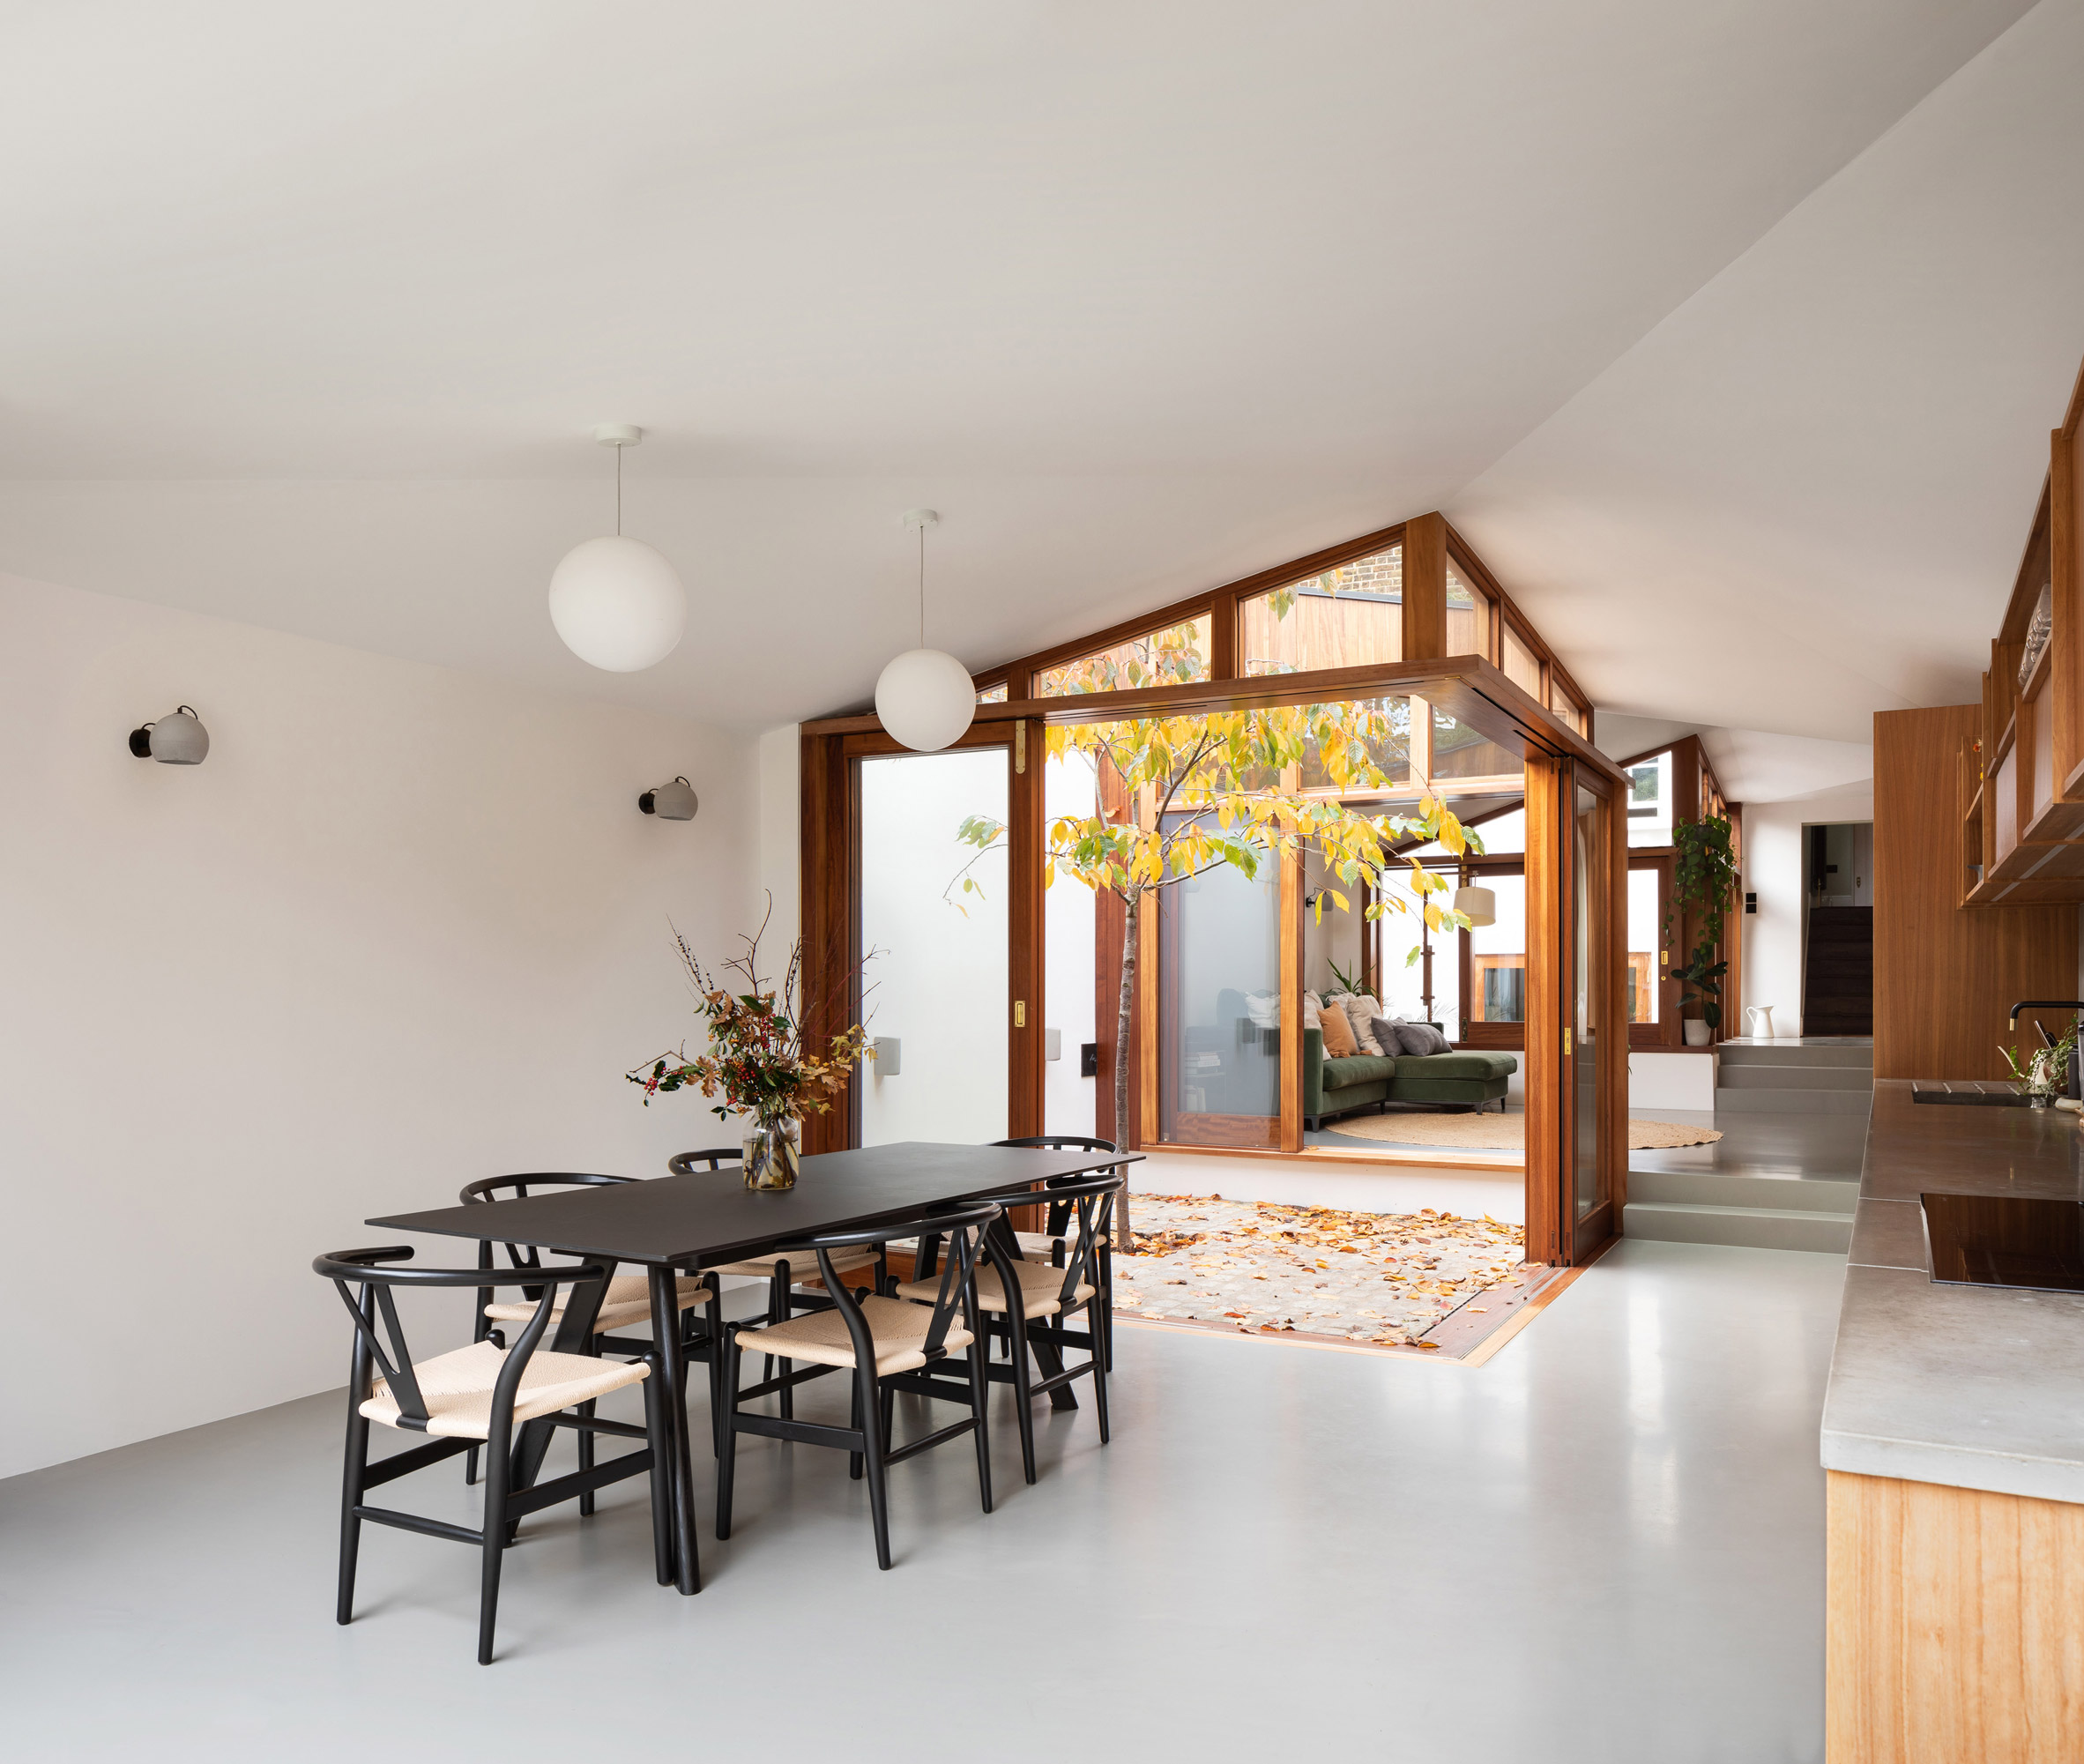 The kitchen and dining room of A Cloistered House